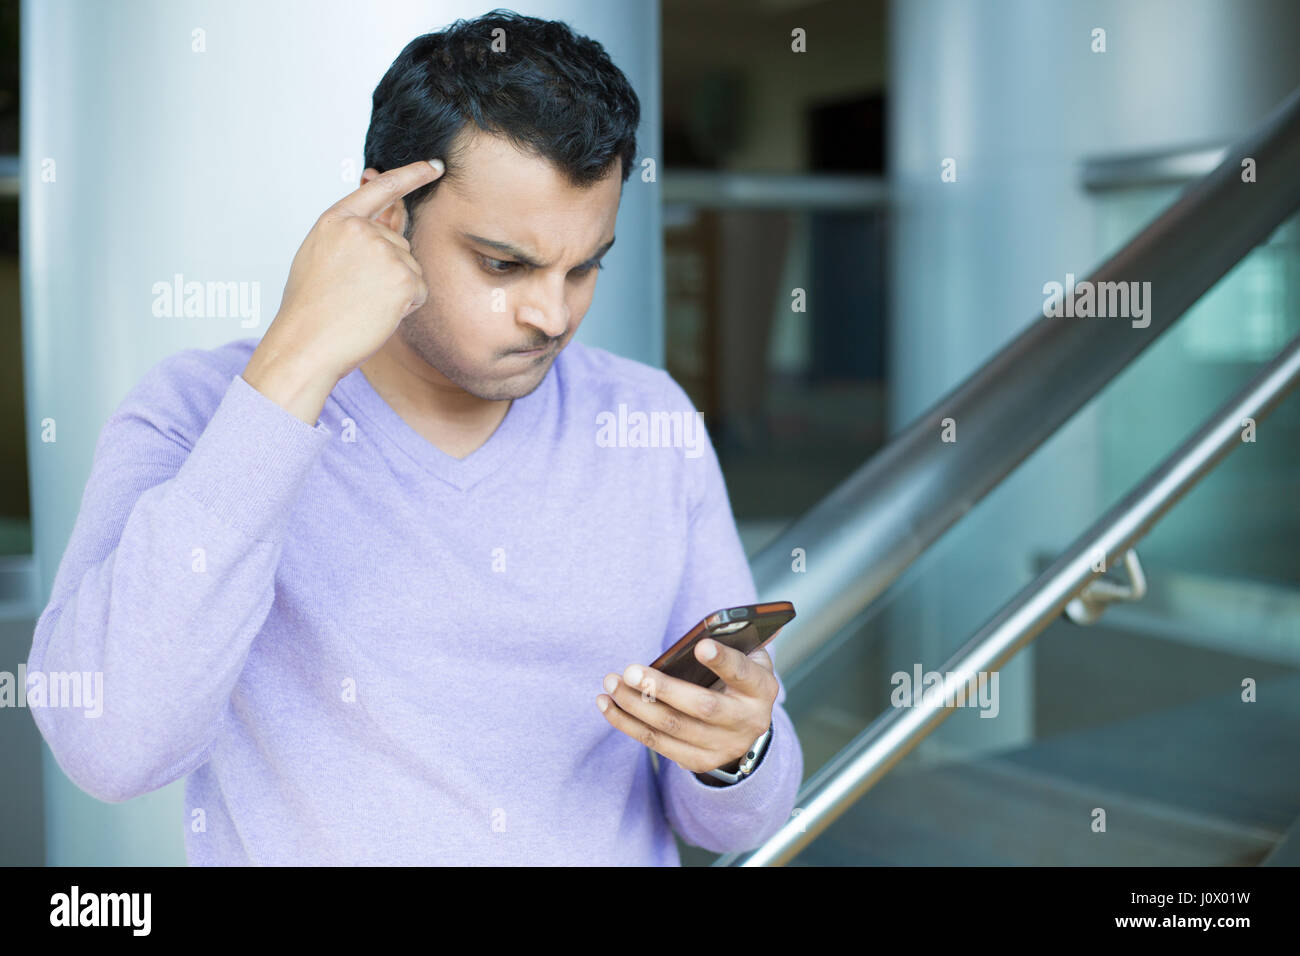 Closeup portrait, young man in purple sweater dumbfounded, flabbergasted about what he sees on cellphone, racking Stock Photo